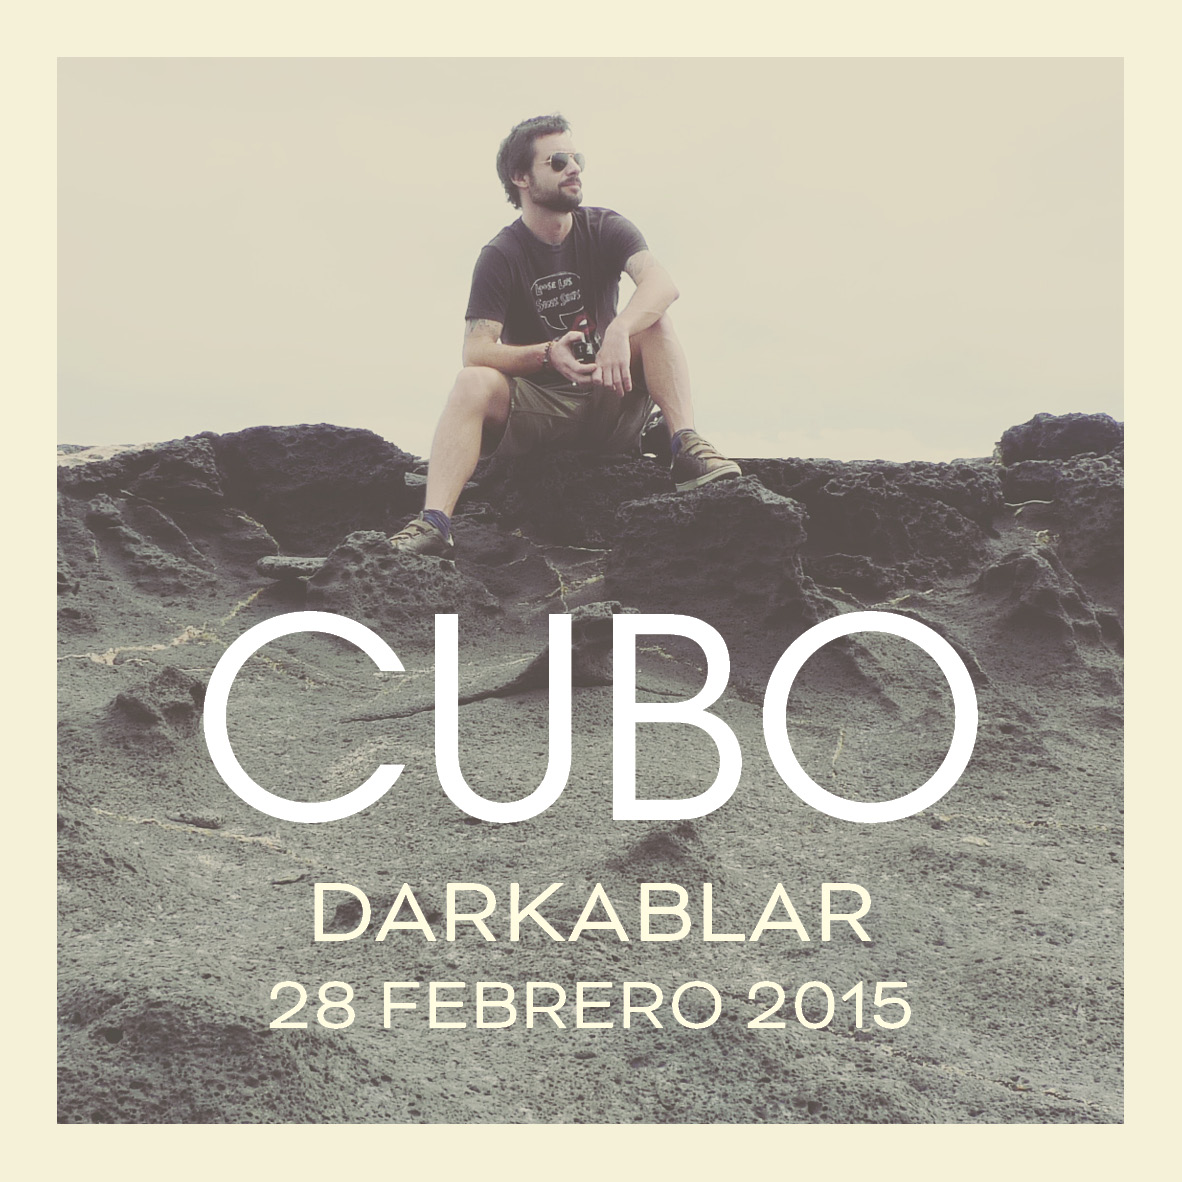 cubo_darkablar_feb2015